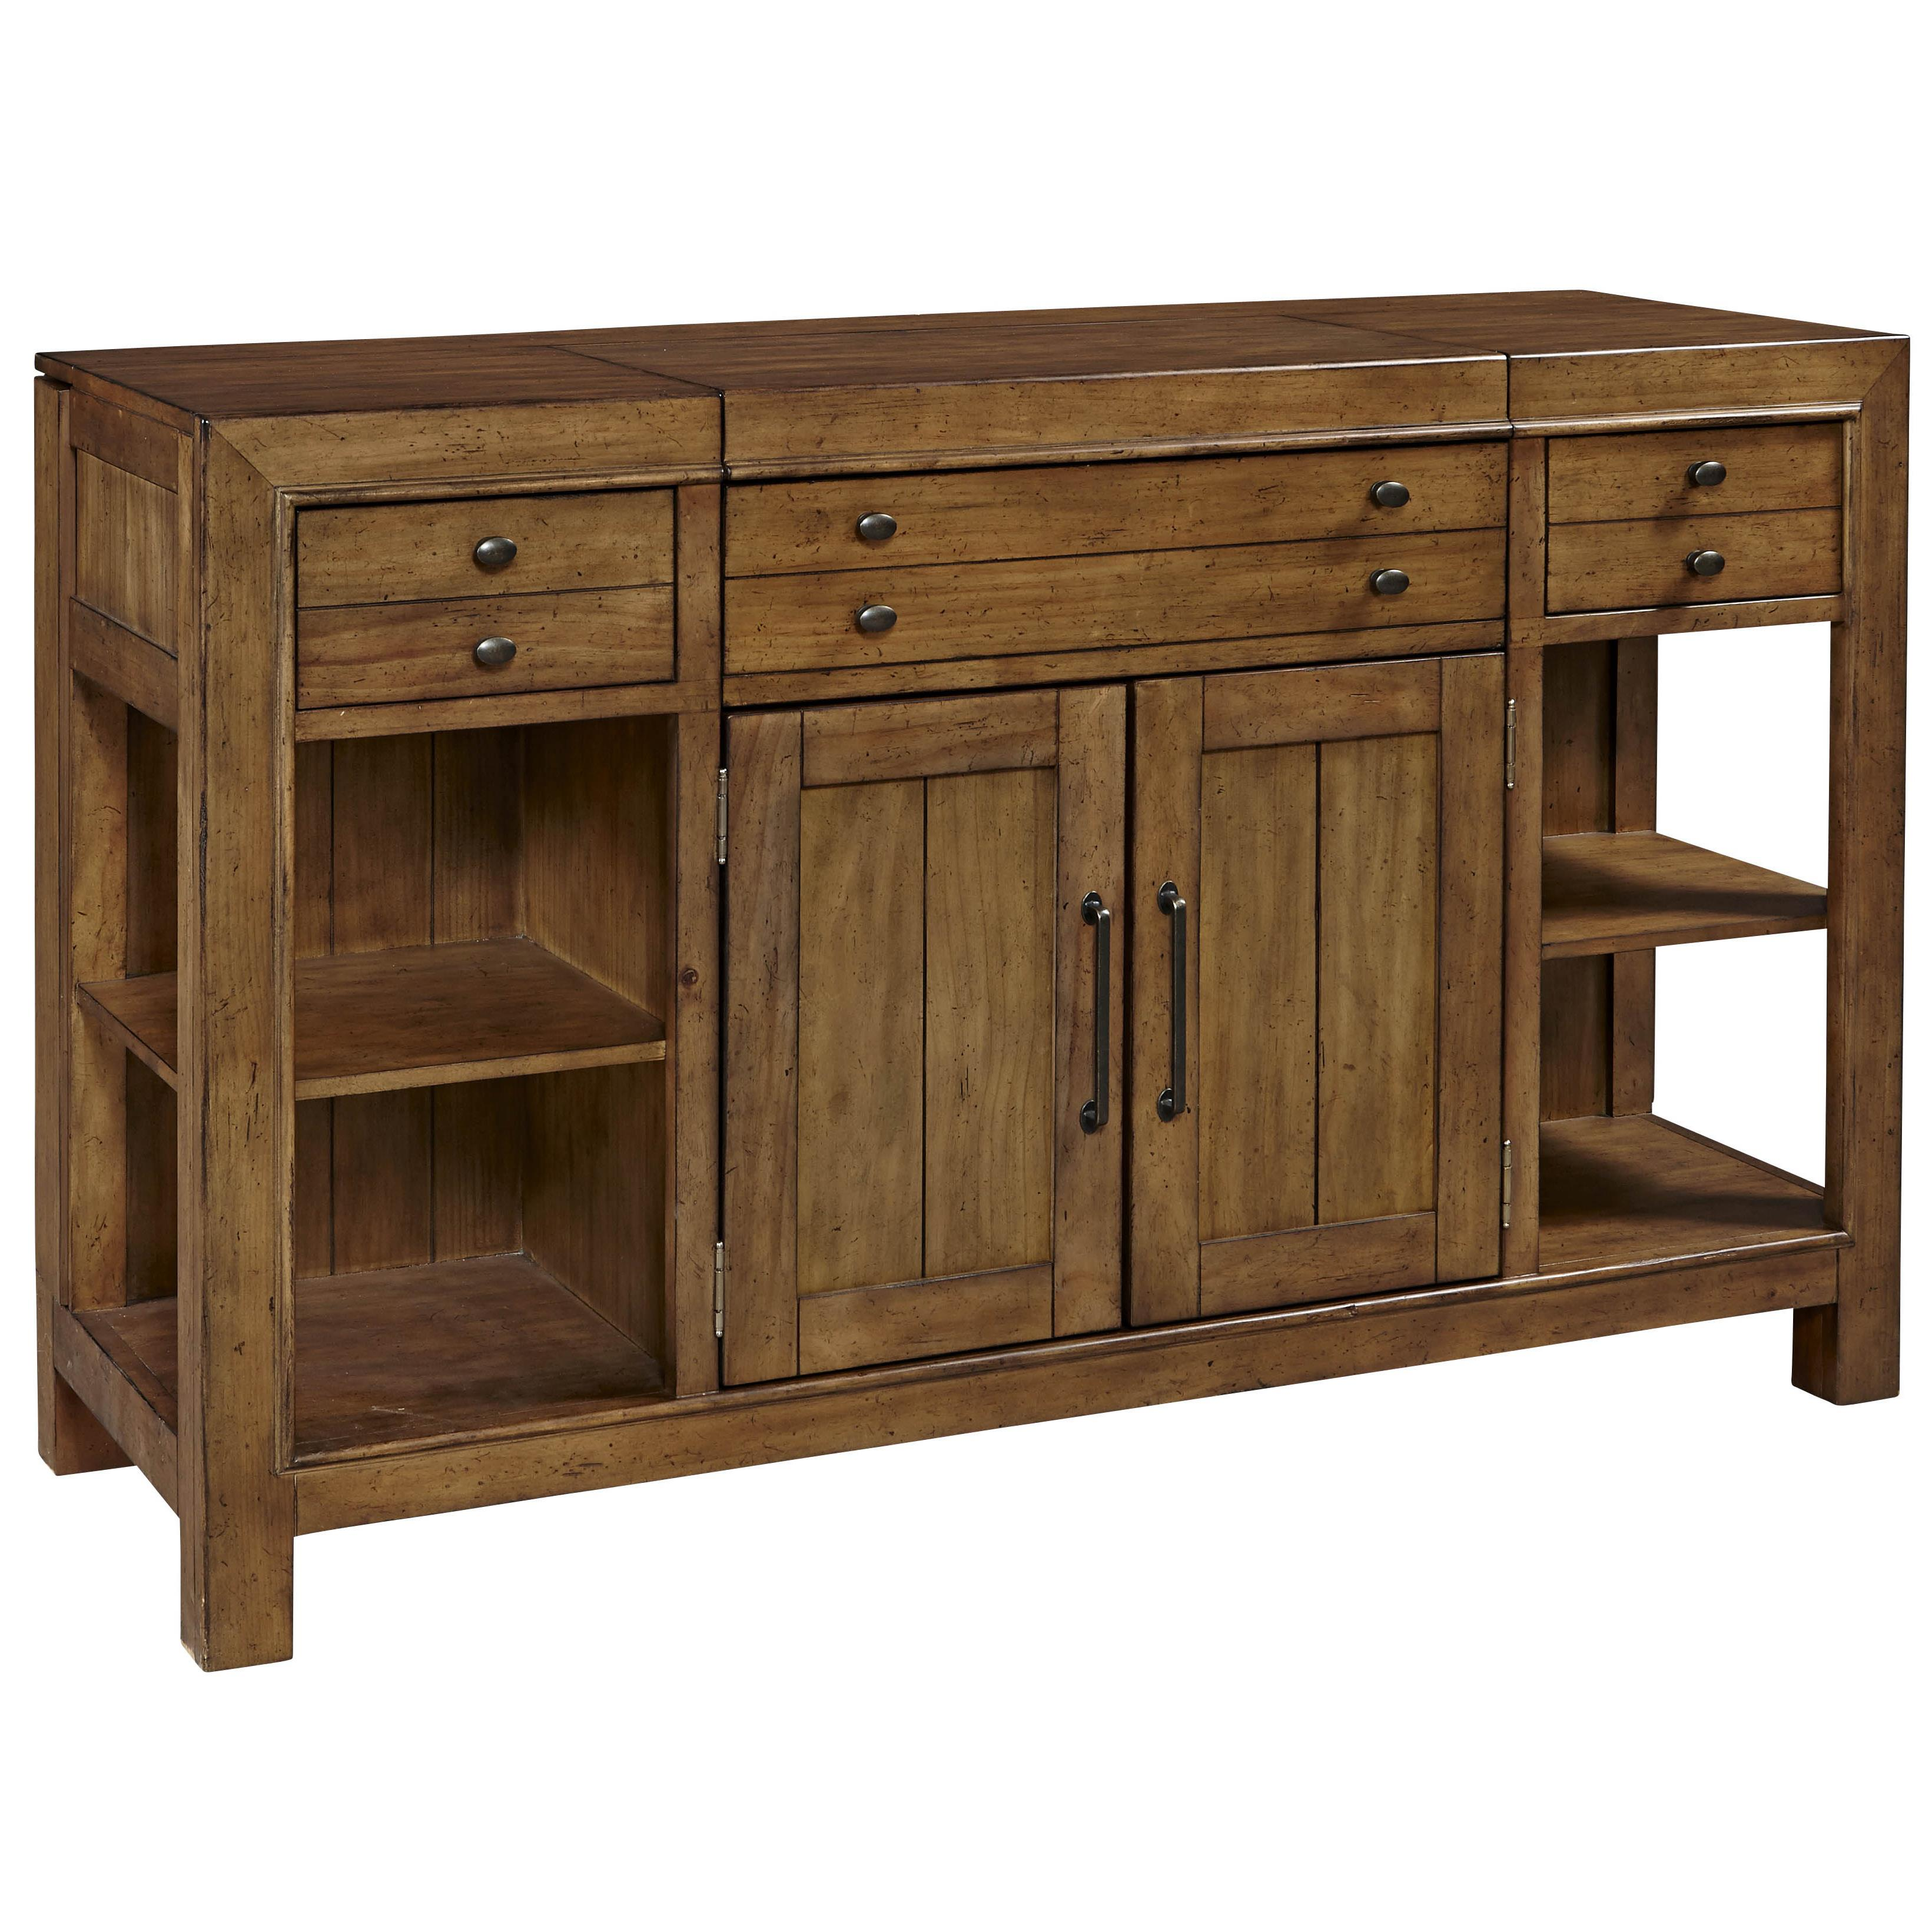 Broyhill Furniture Bethany Square Sideboard - Item Number: 4930-517